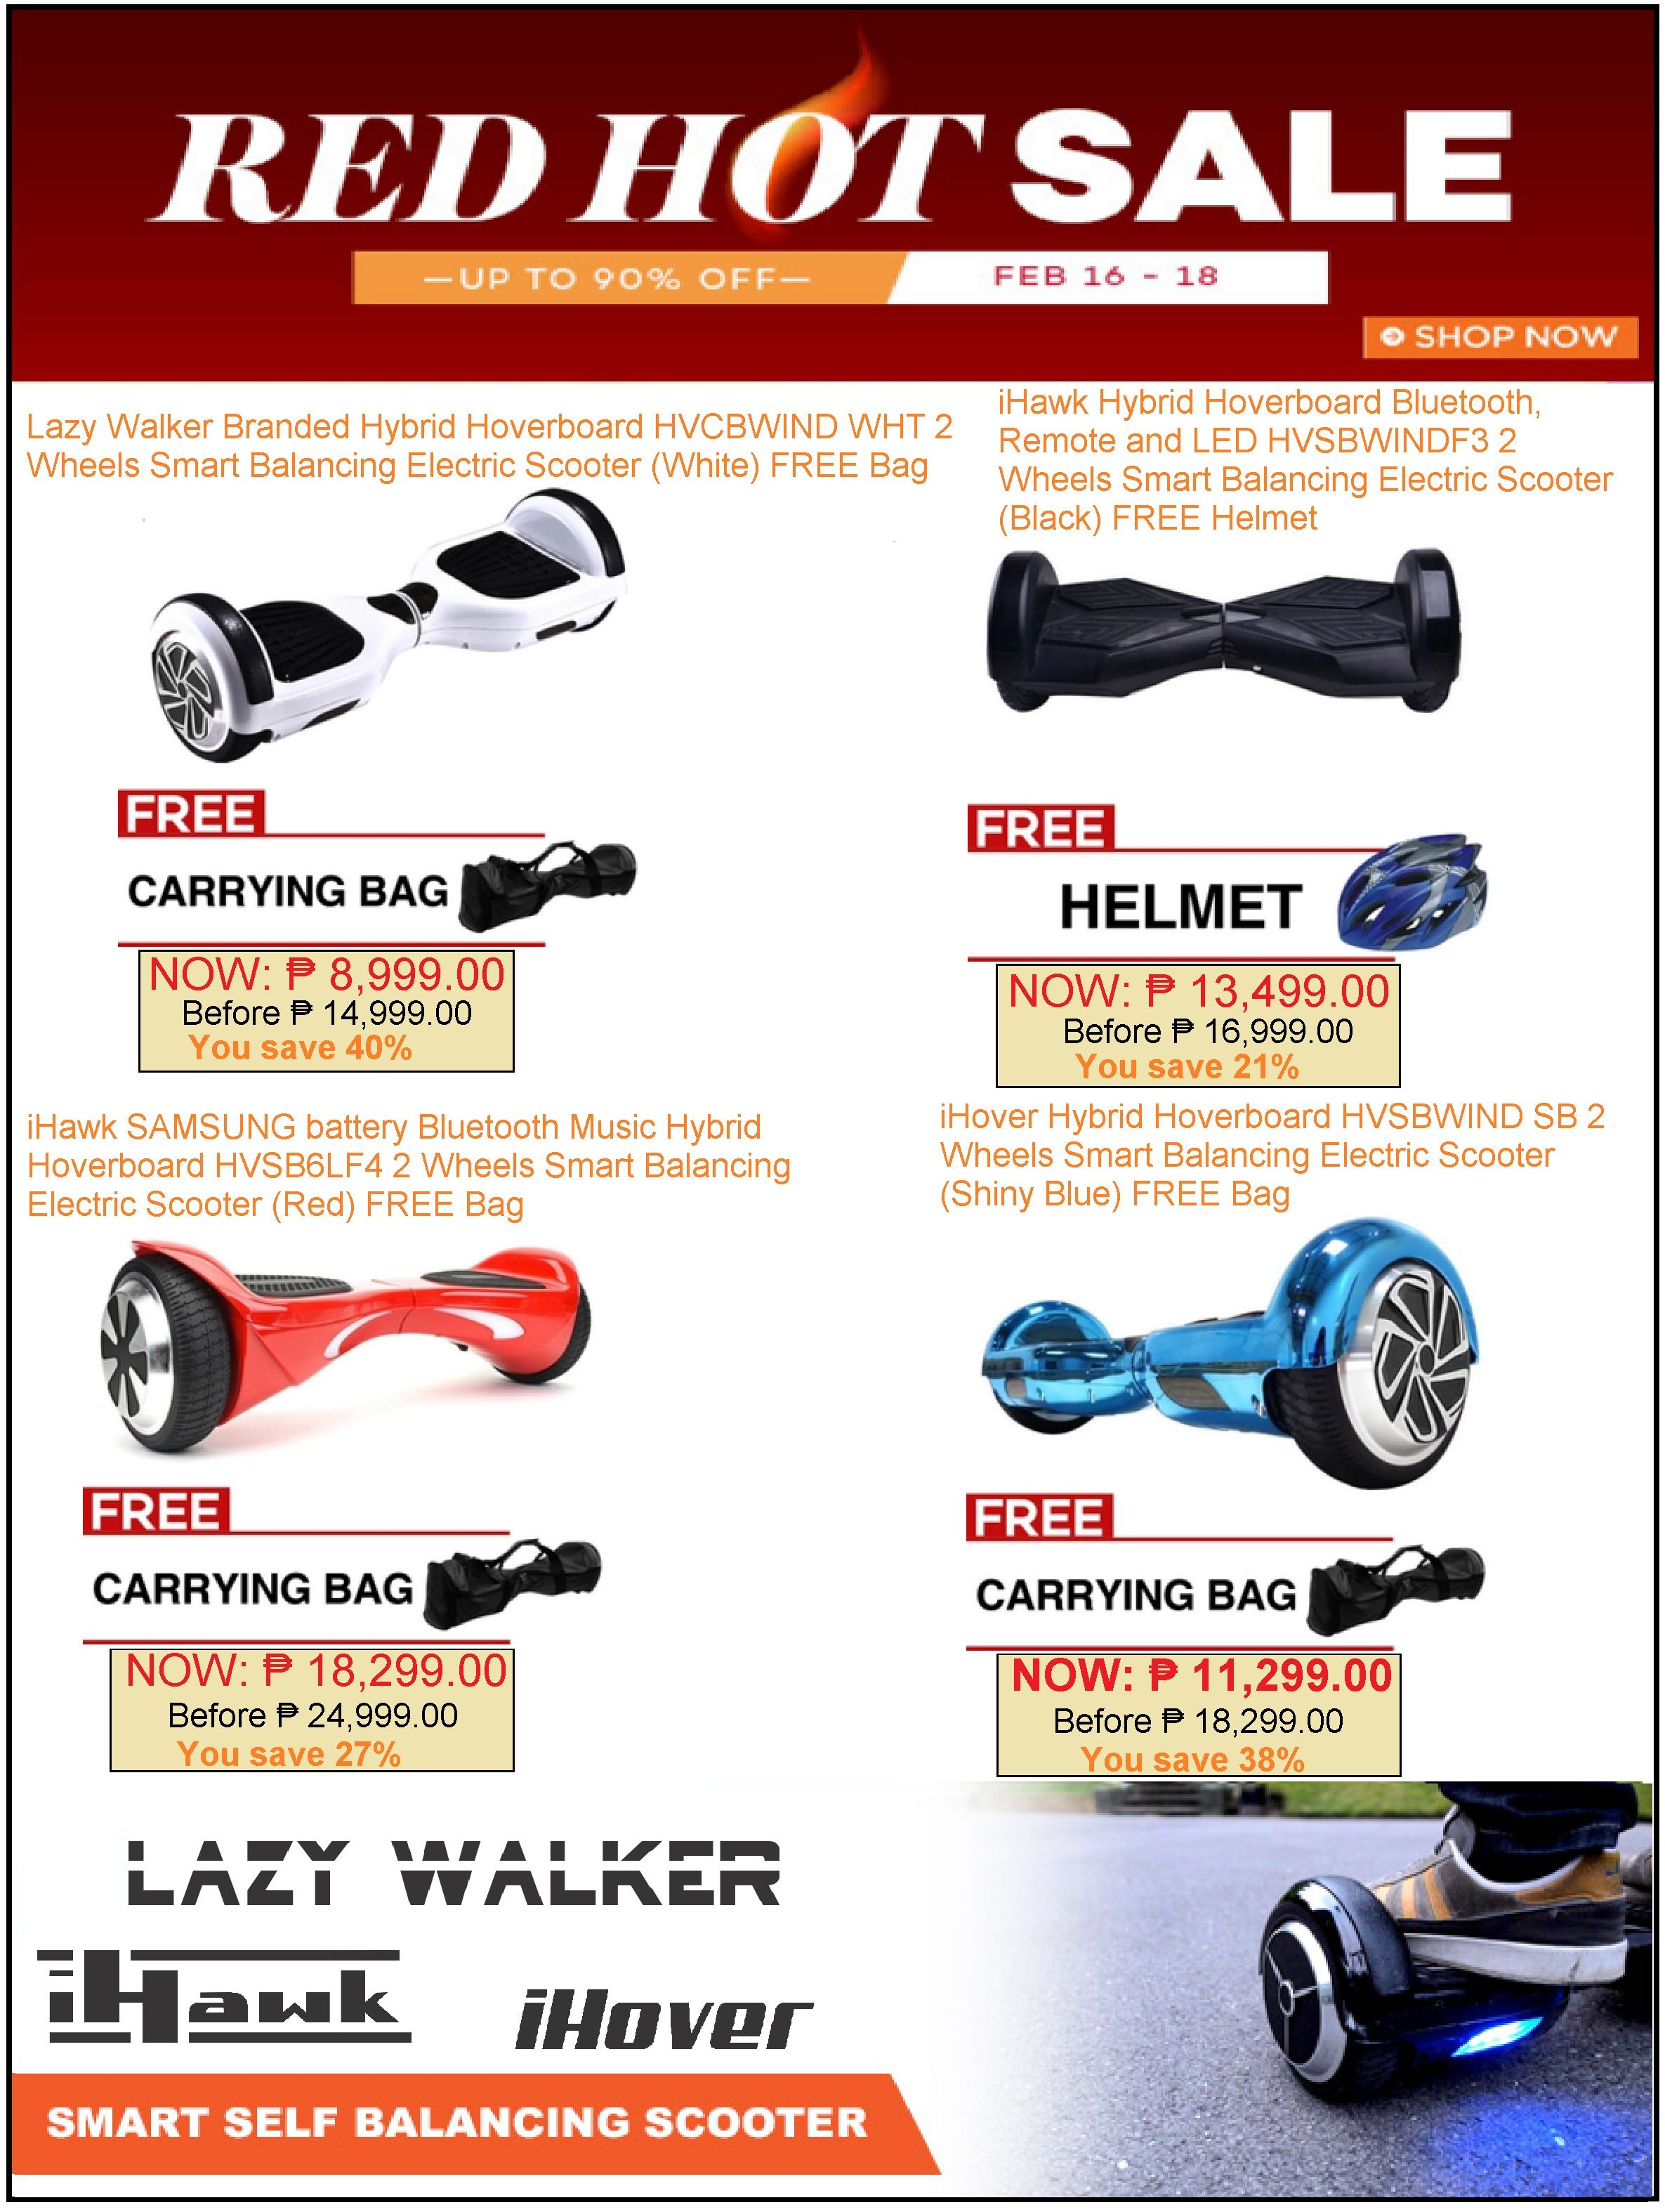 HOVERBOARD SALE LAZADA'S RED HOT SALE PROMO! SAVE up to